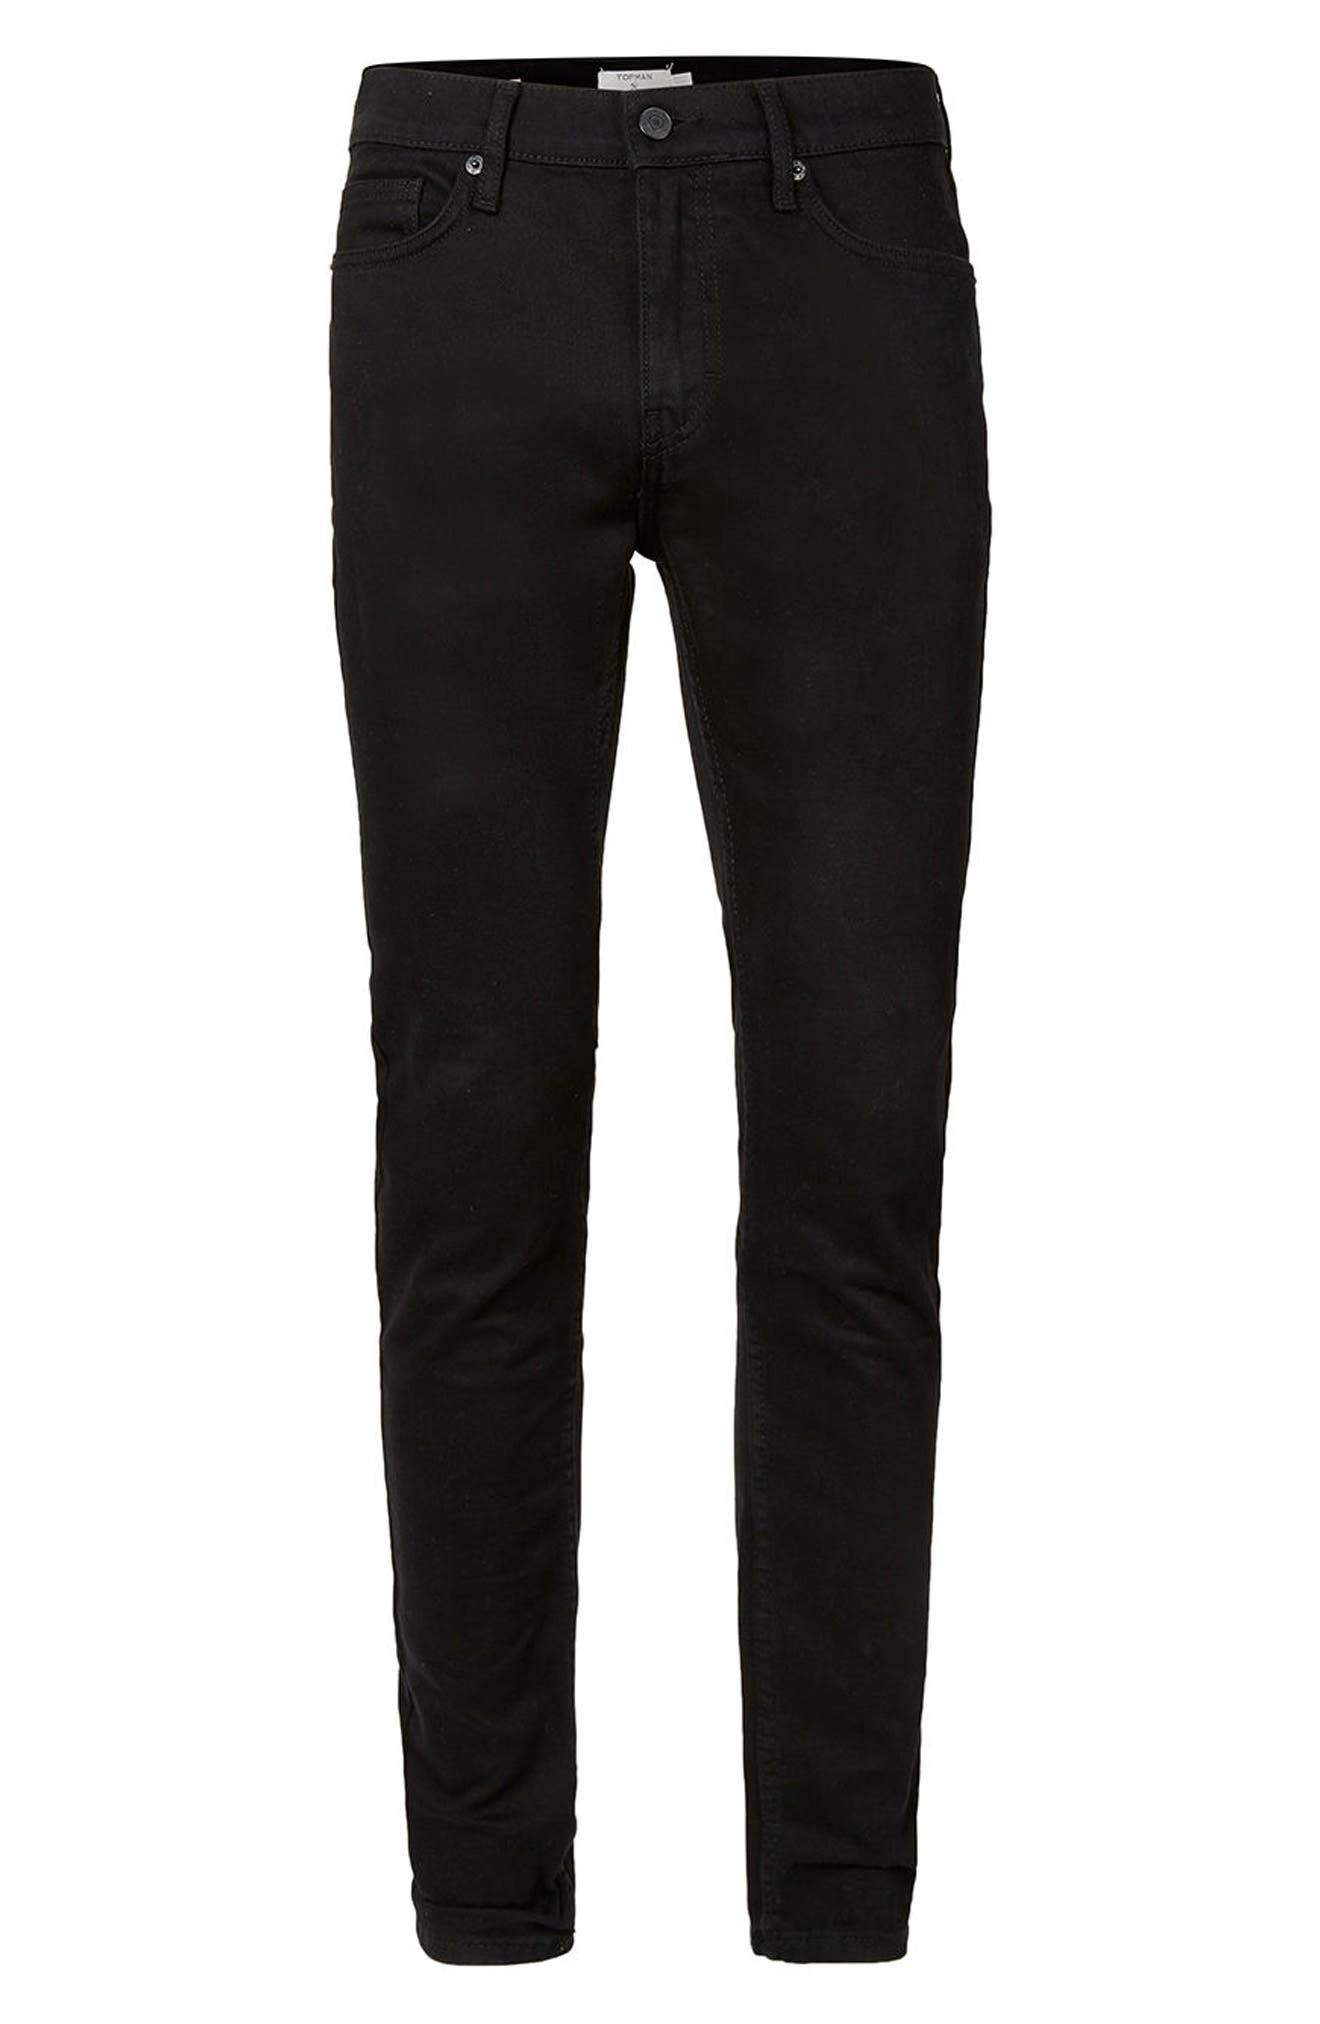 TOPMAN, Skinny Stretch Jeans, Alternate thumbnail 5, color, BLACK